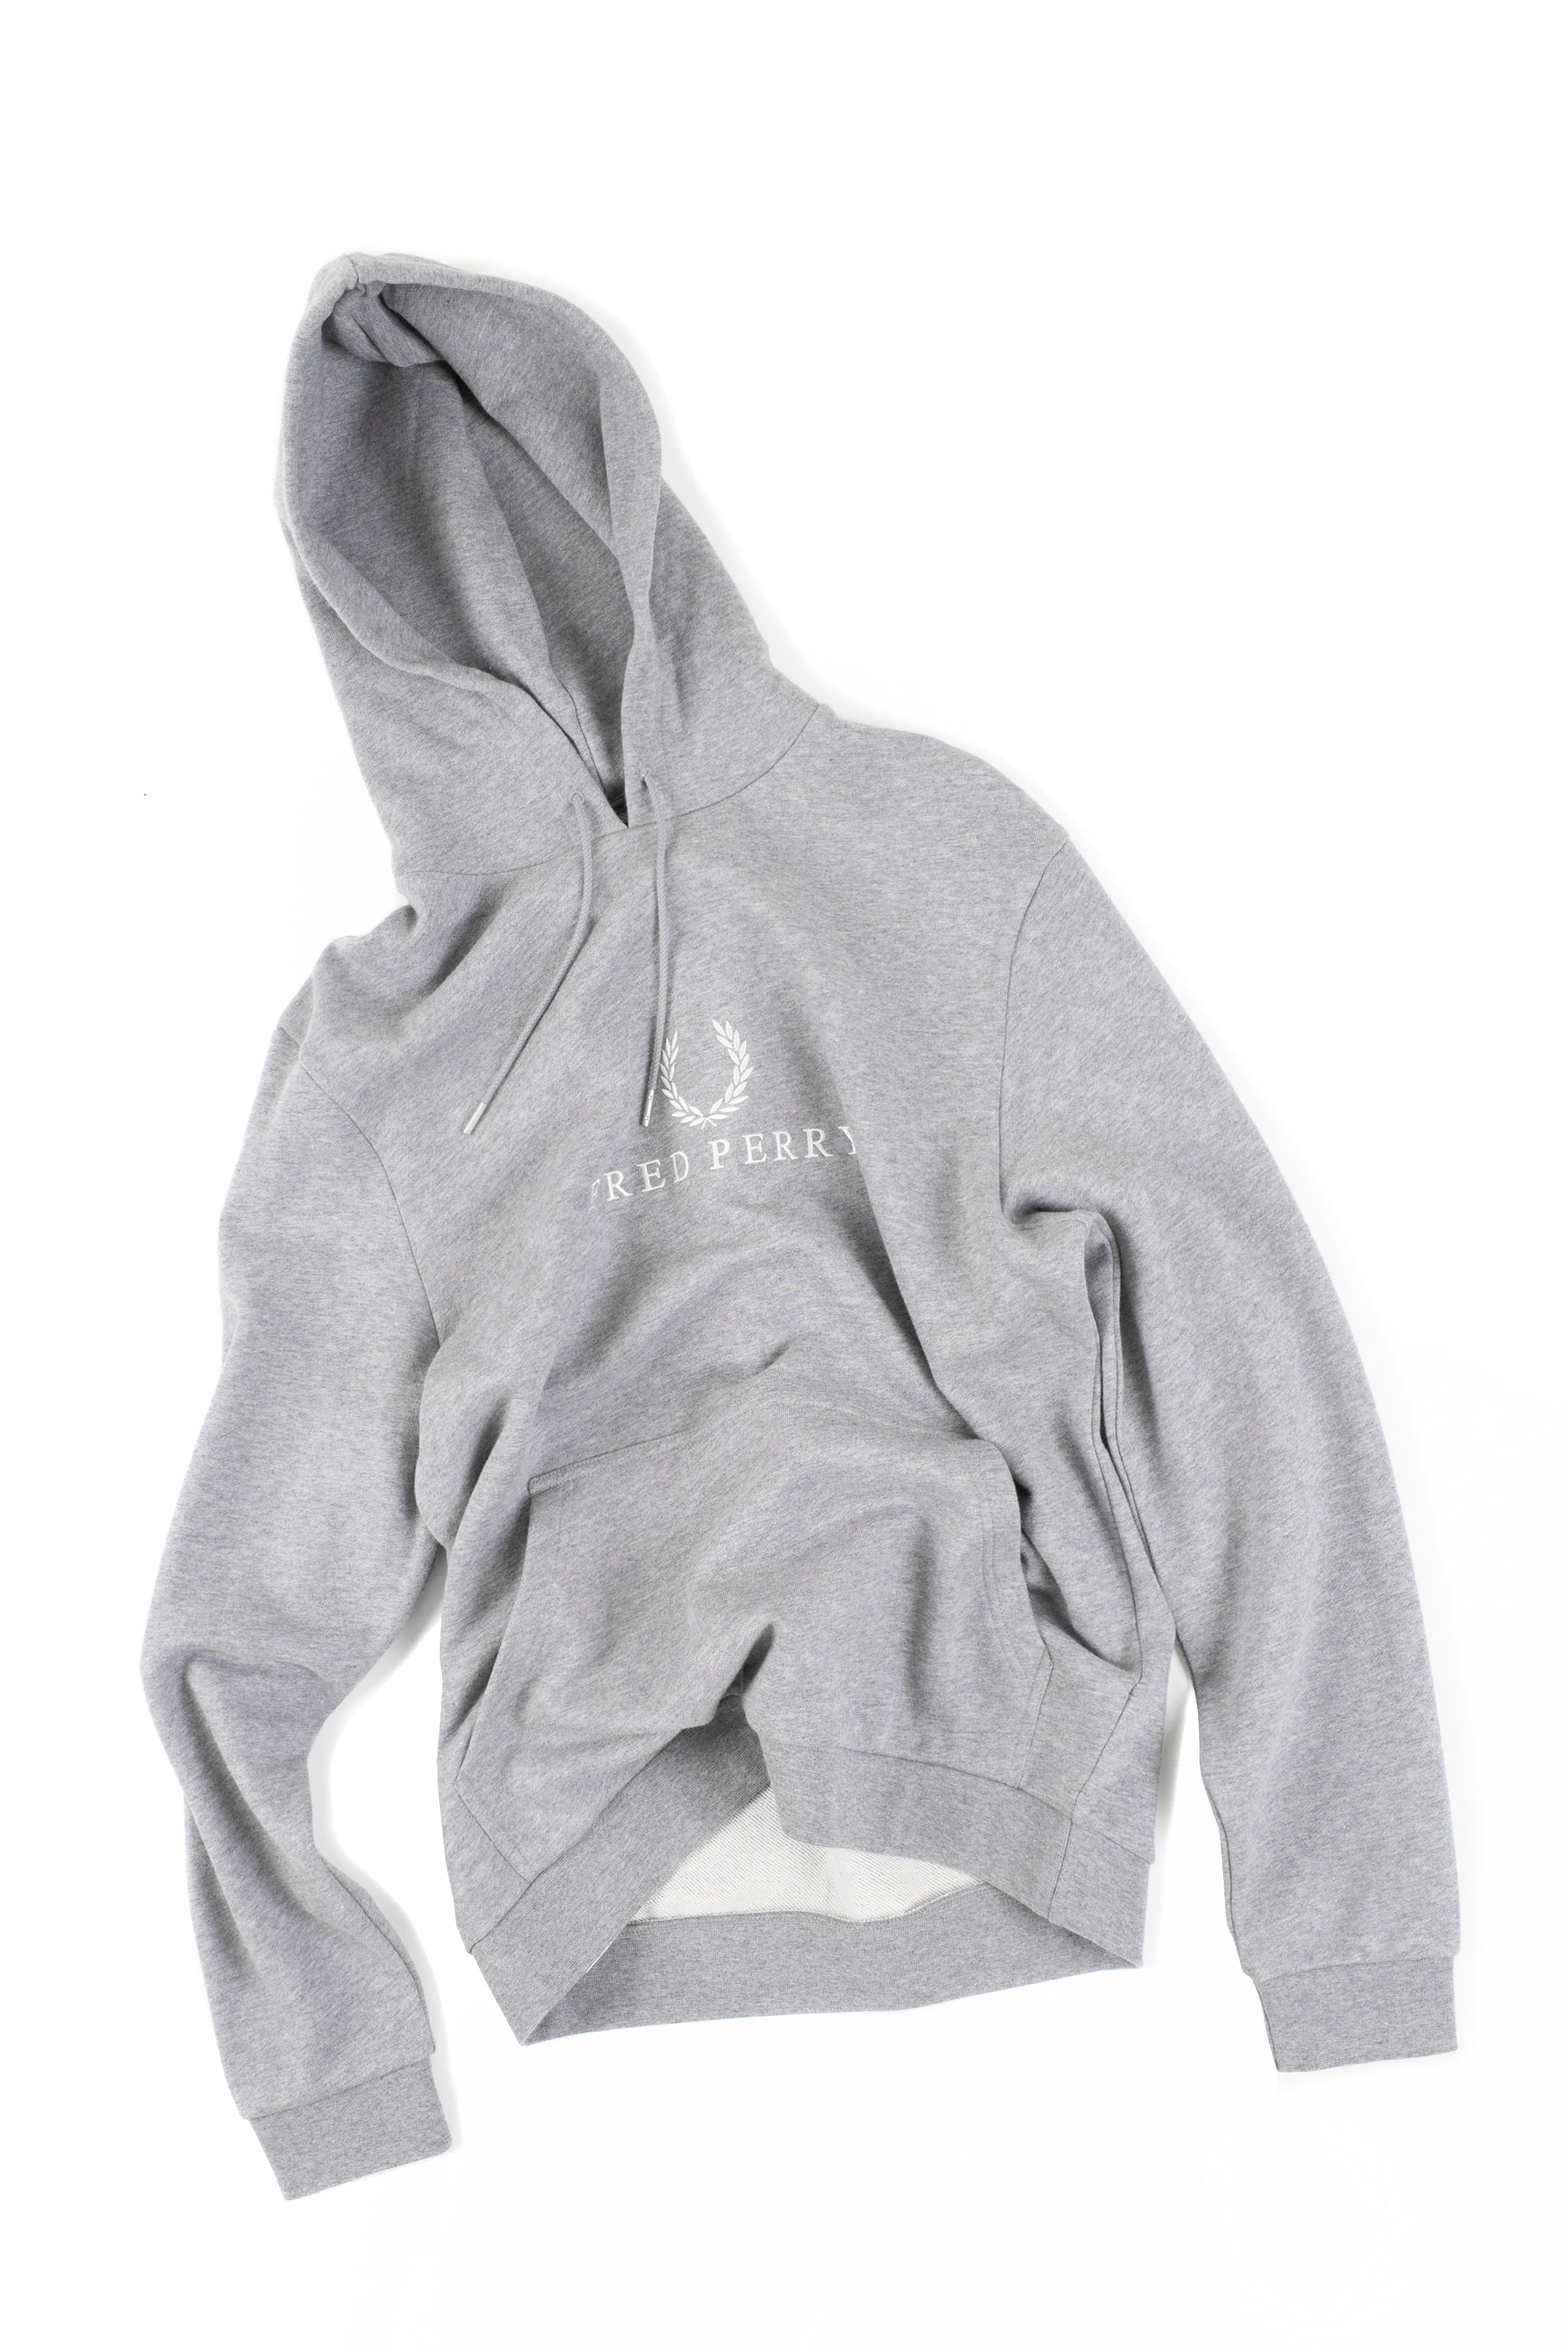 FRED PERRY : Embroidered Hooded Sweatshirt (Gray)